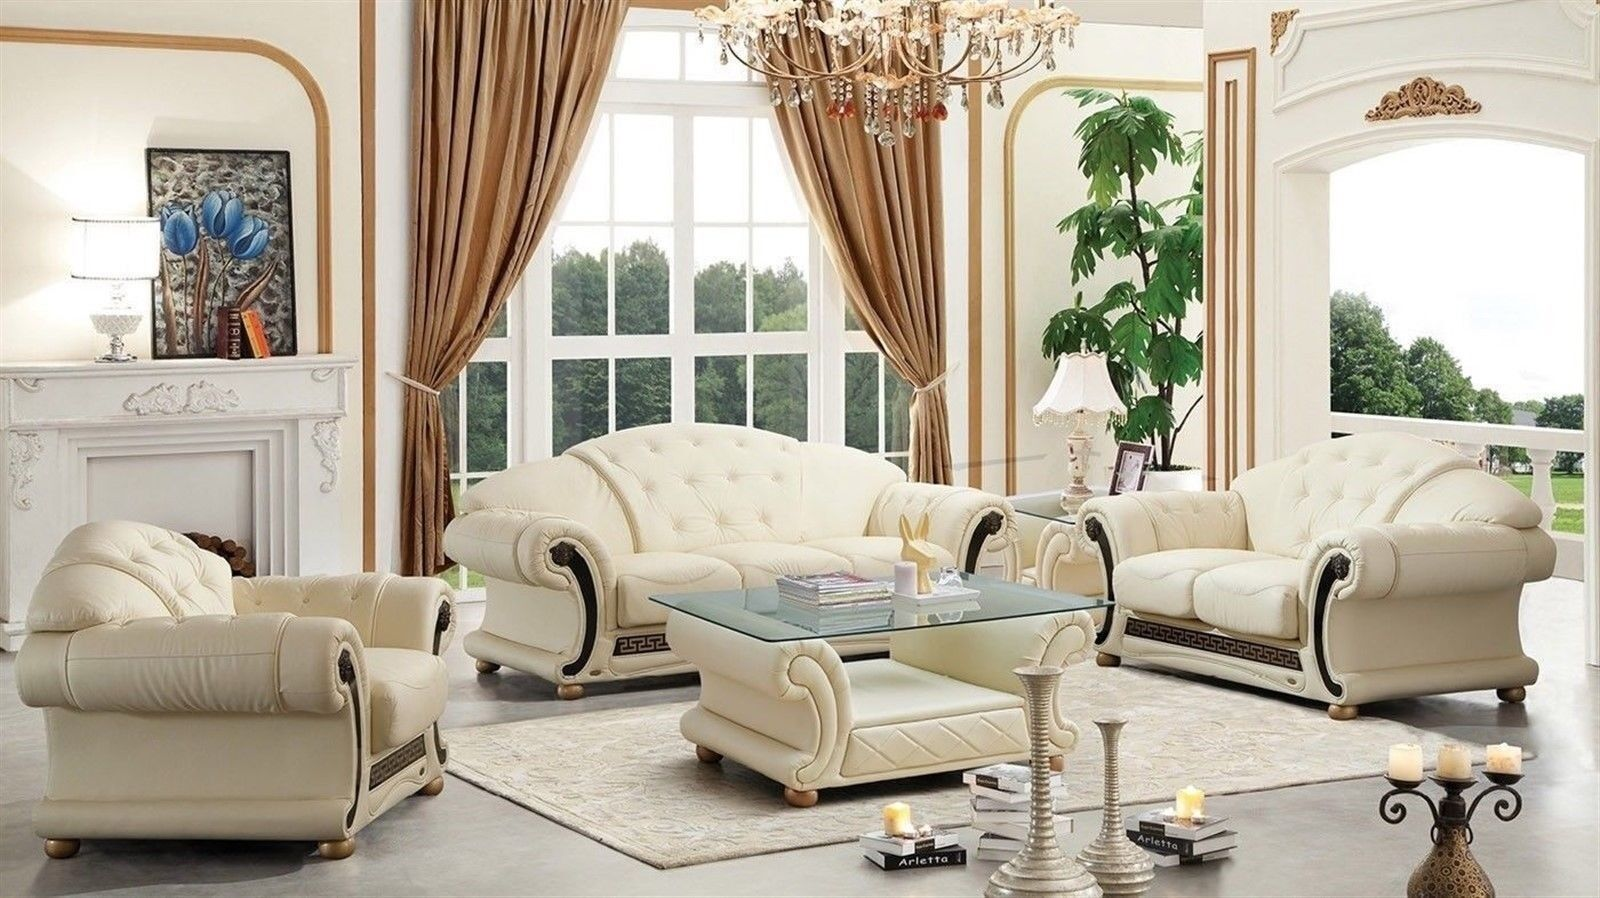 Vig Divani Casa Cleopatra Cream Genuine Leather Sofa Set 3ps Classic Traditional For Sale Online Ebay